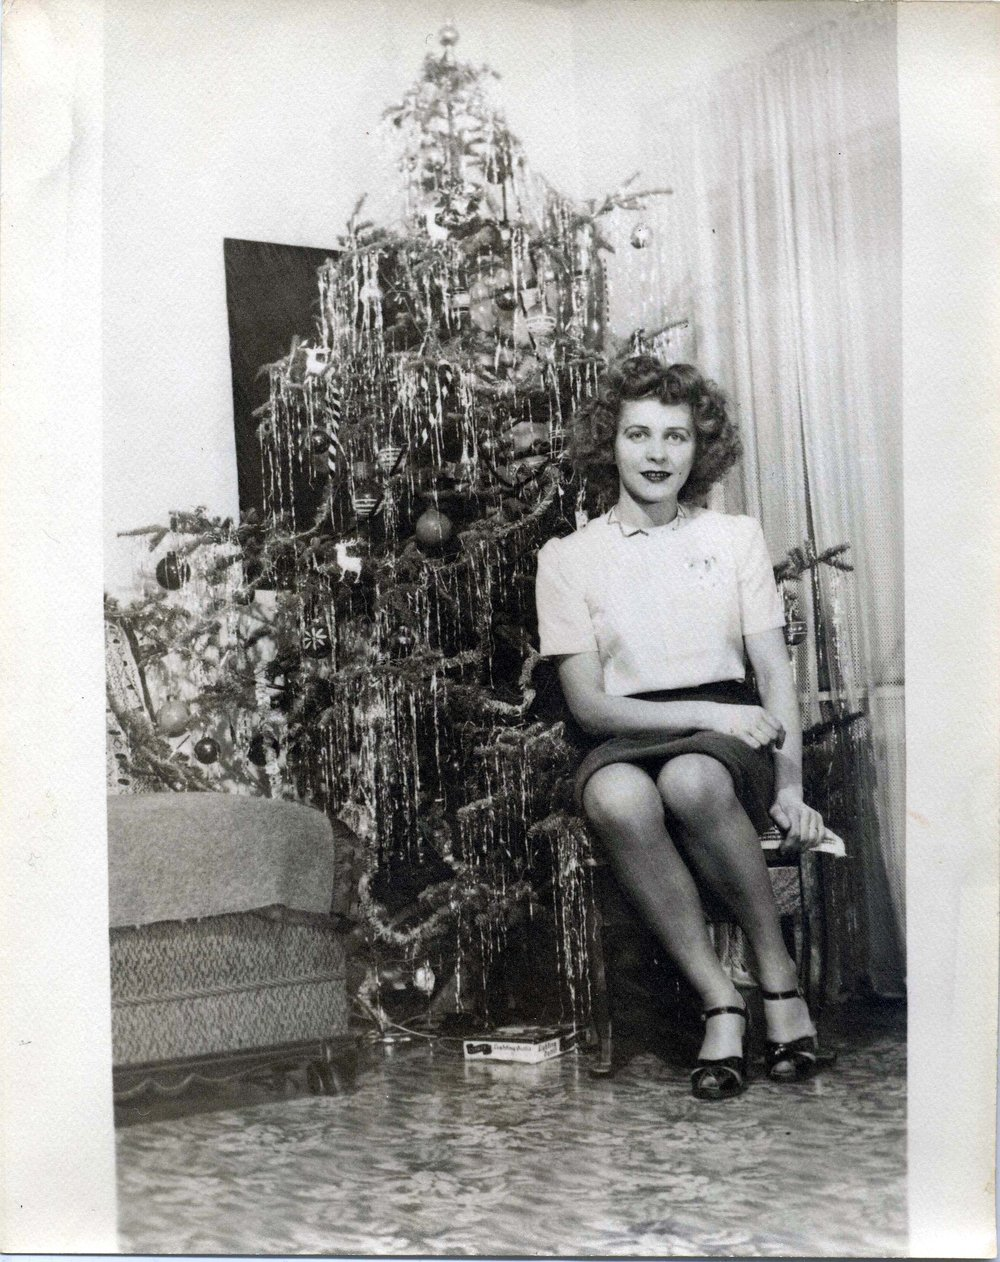 Eugene Von Bruenchenhein (American, 1910-1983).  Untitled (Marie seated by decorated Christmas tree) , n.d. Gelatin silver print, 10 x 8 in. Intuit: The Center for Intuitive and Outsider Art, gift of Lewis and Jean Greenblatt, 2005.4.4